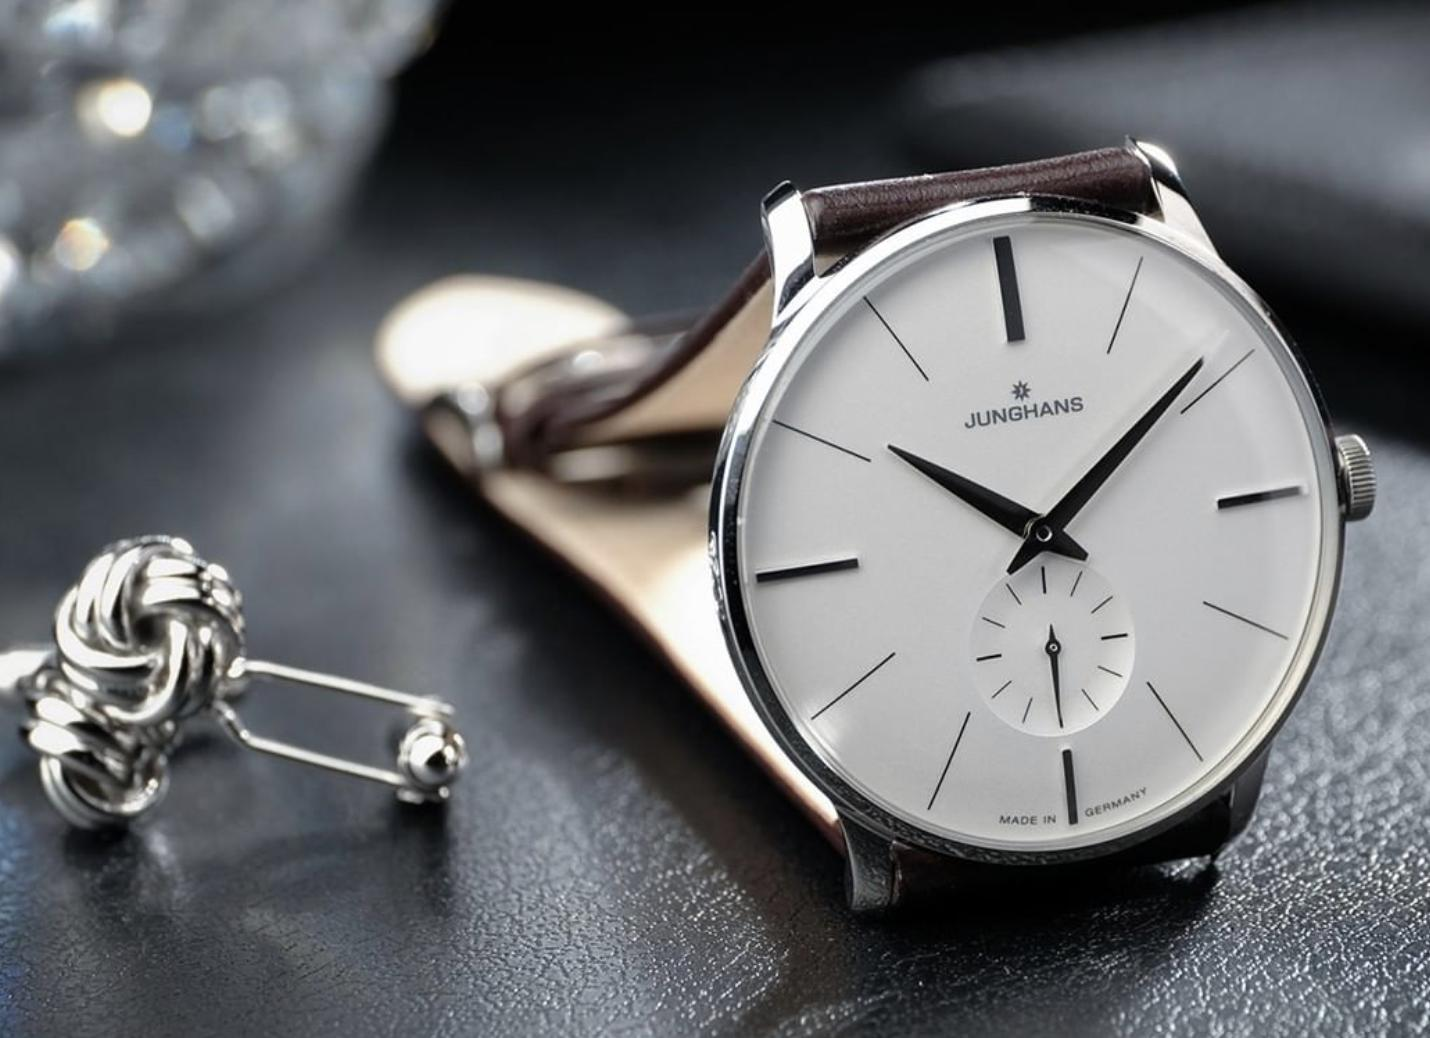 8 Lesser Known Watch Brands You Should Consider